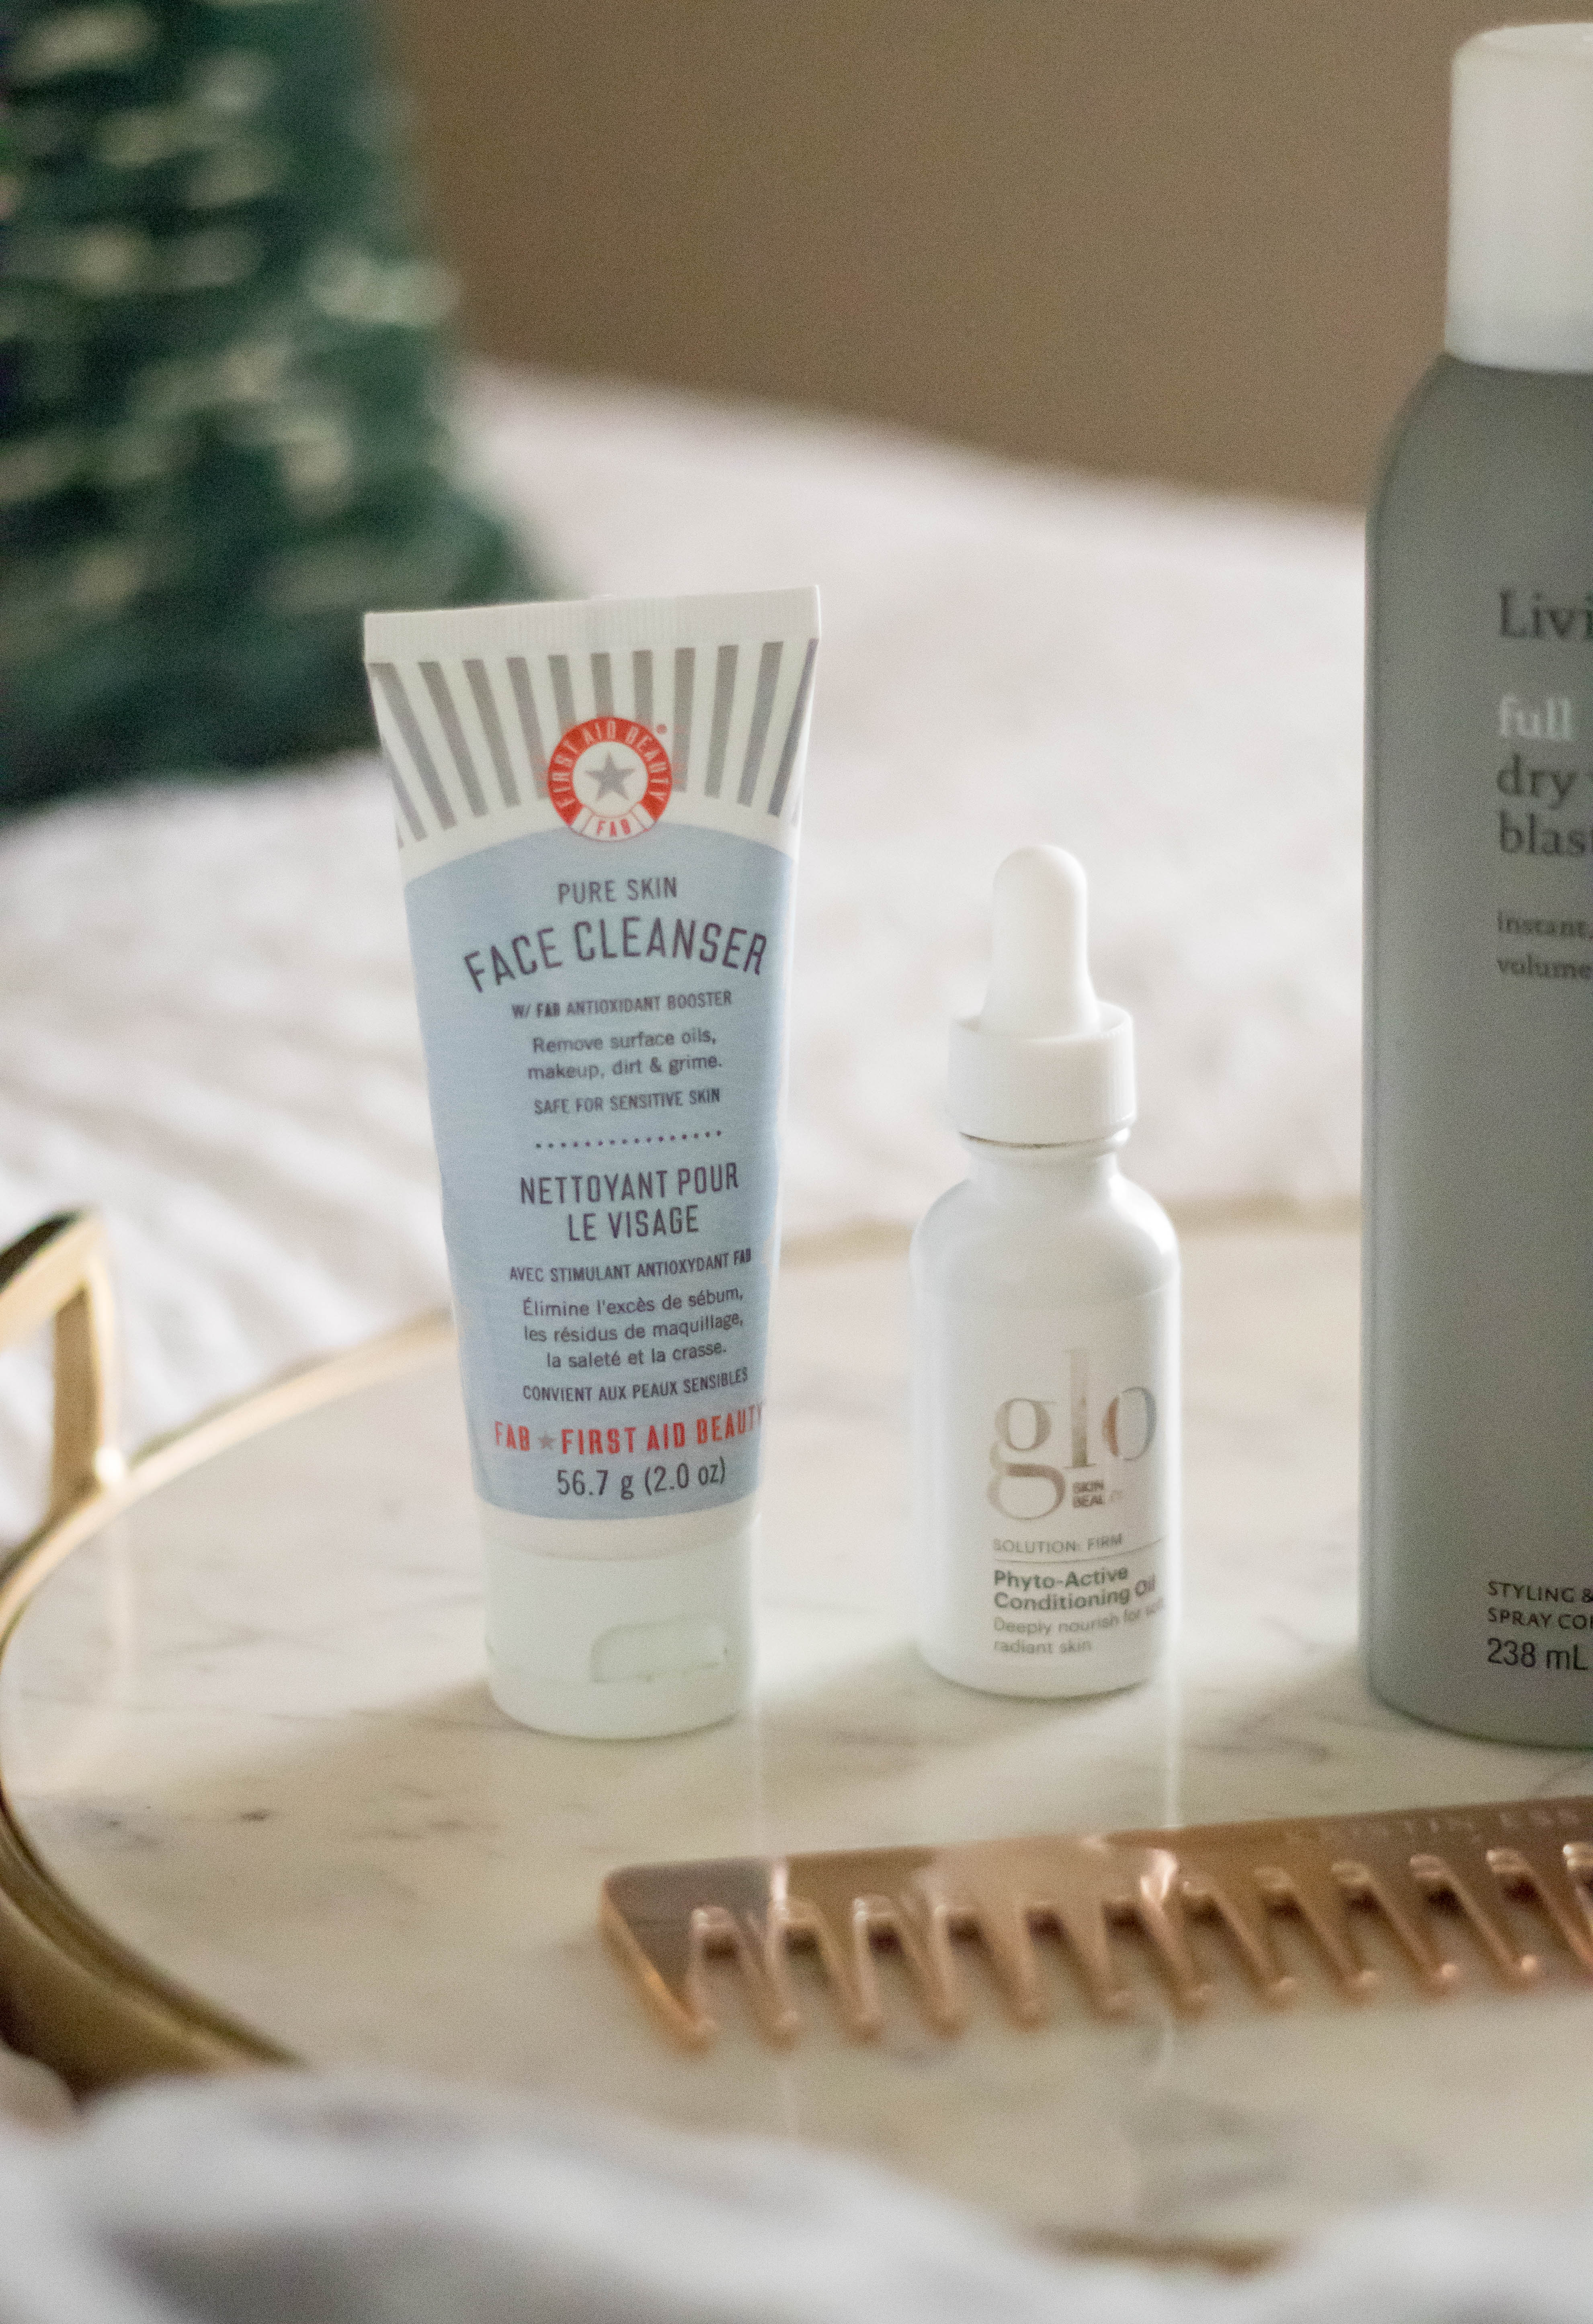 first aid beauty face cleanser review #firstaidbeauty #skincare #cleanbeauty